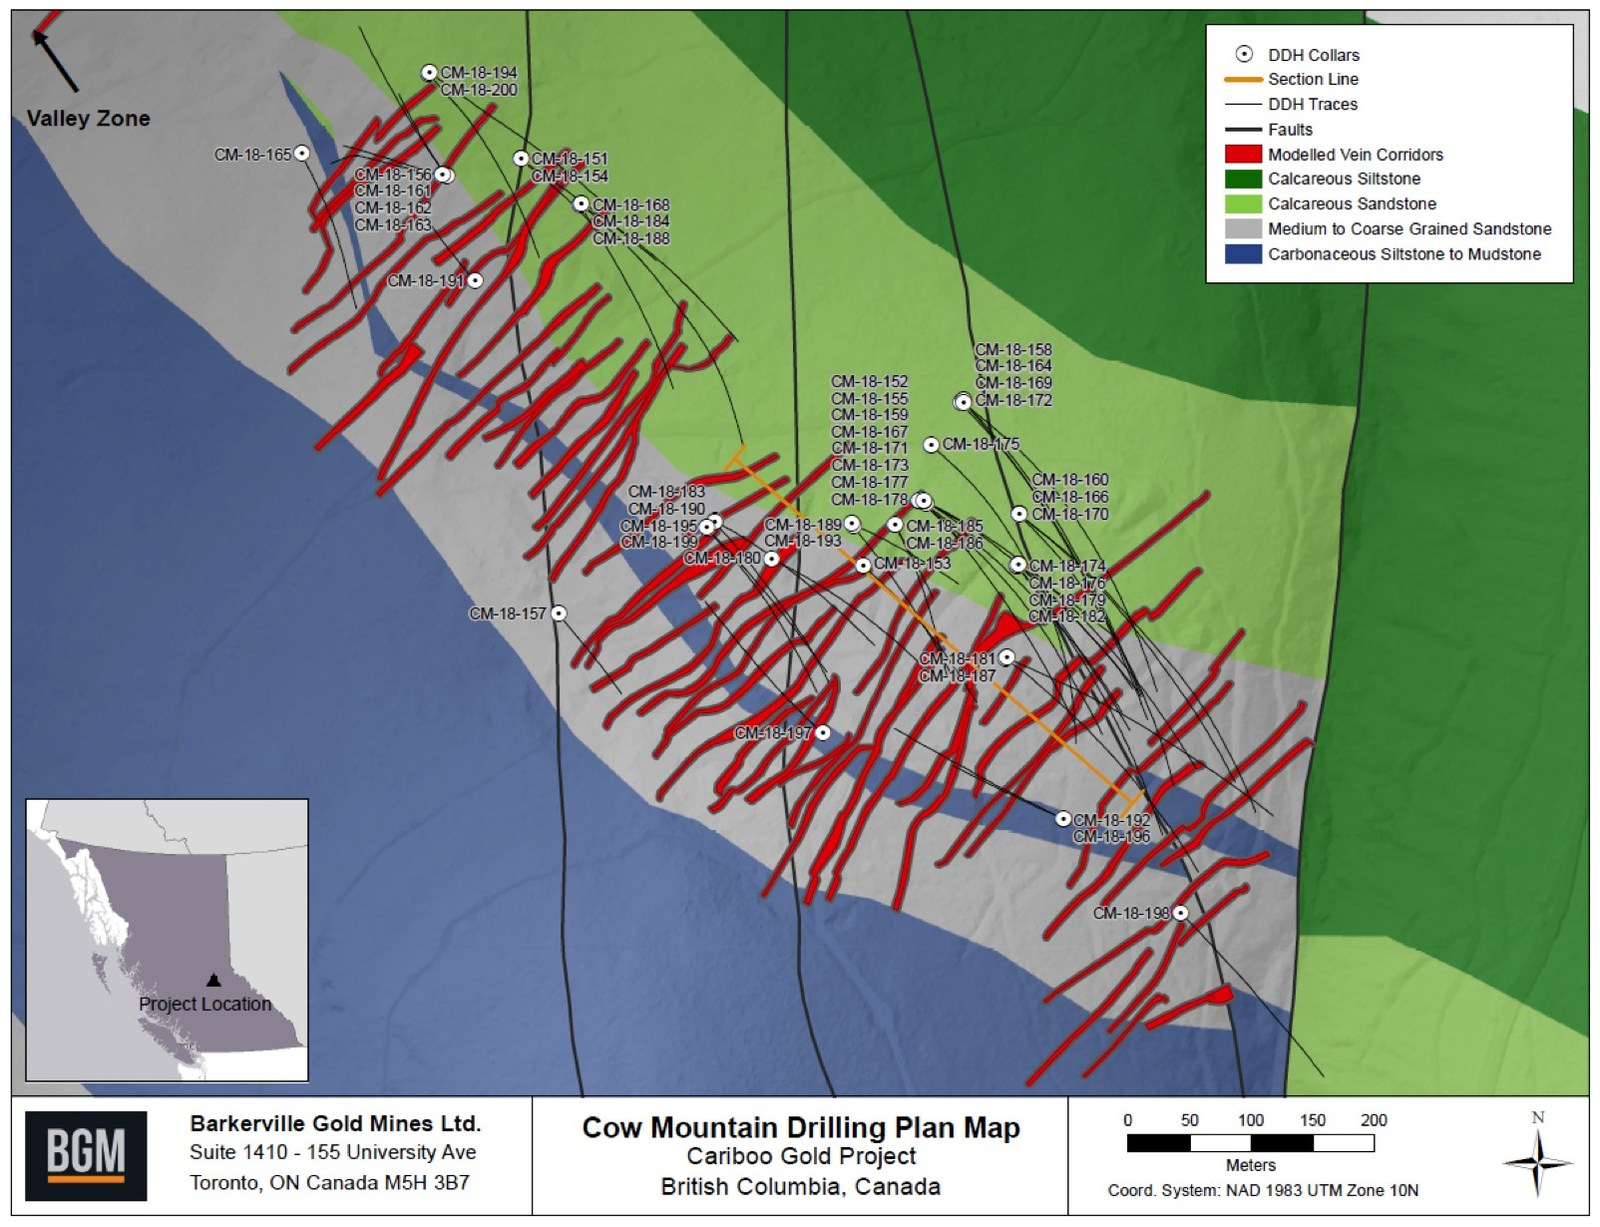 Cow Mountain Drilling Plan Map